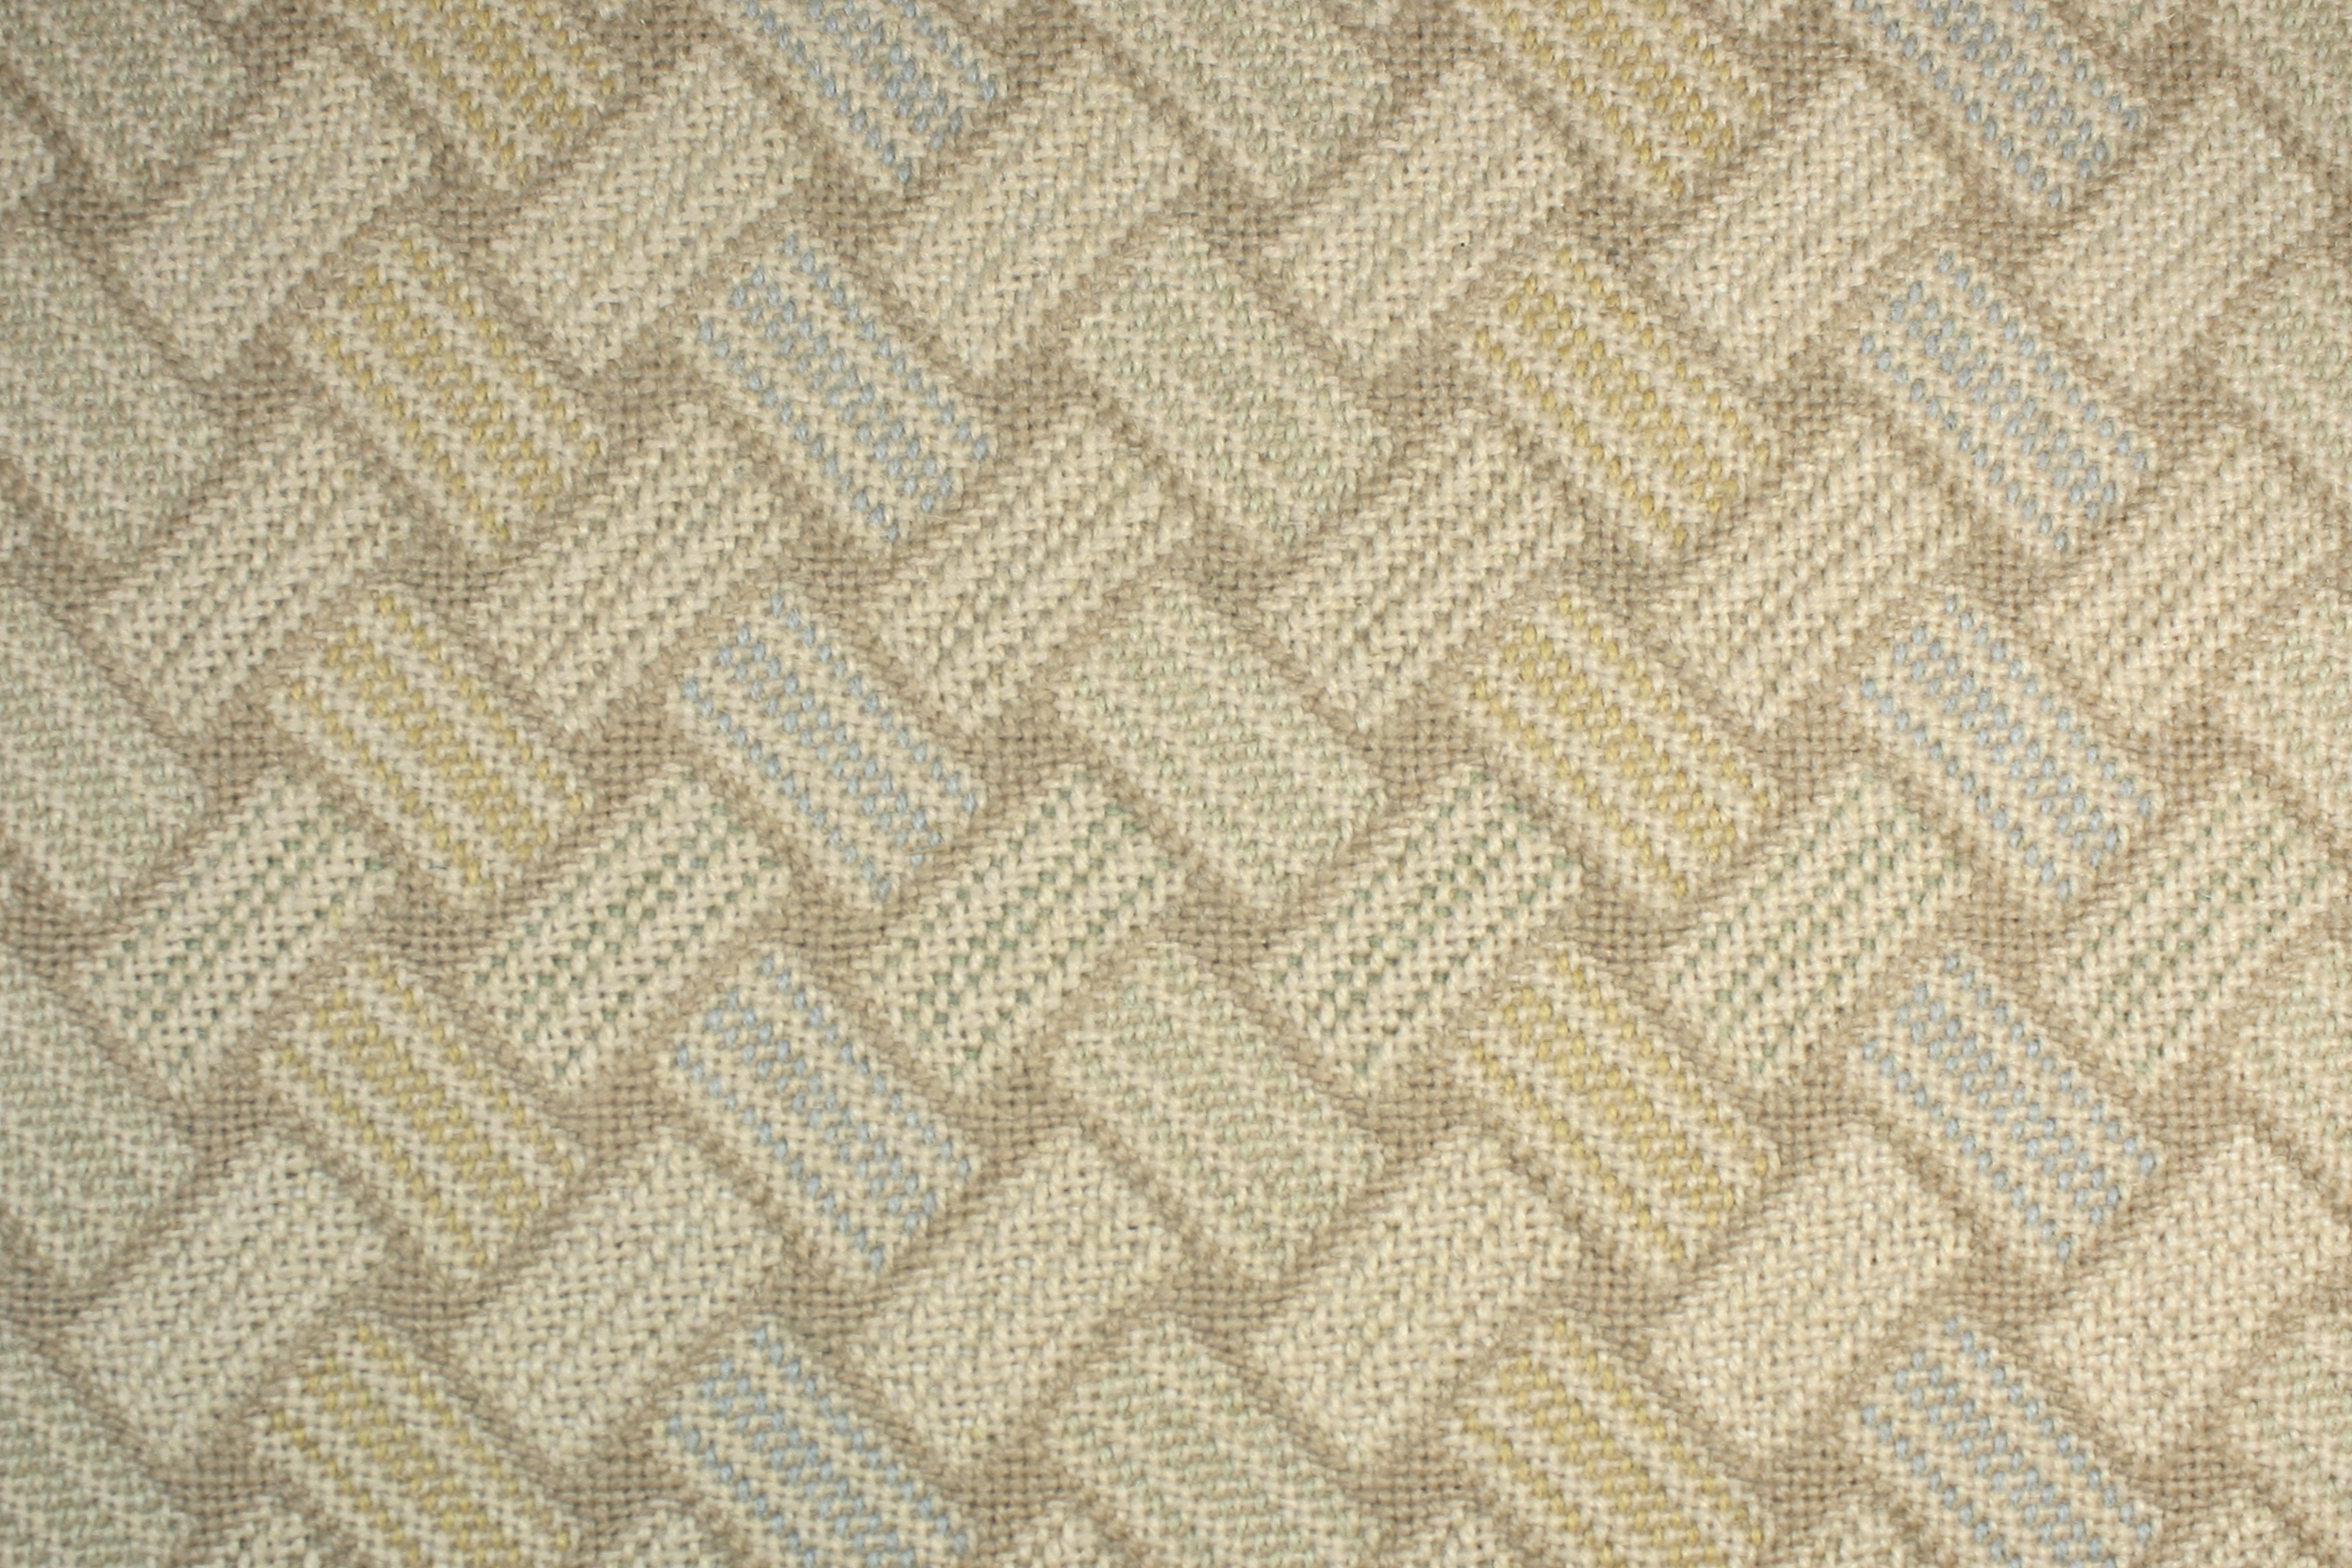 Triple Weave Blue Tan Pale Gold Basketweave Carpet